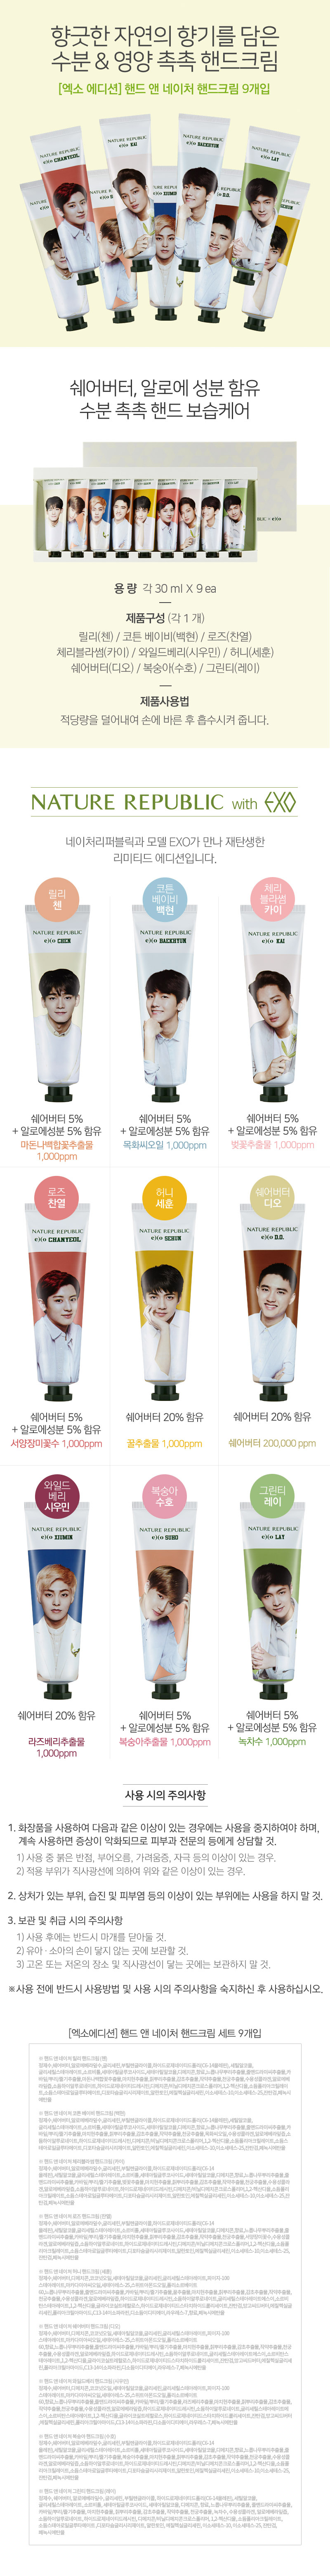 Nature Republic] EXO Edition Hand Cream Set - 11STREET